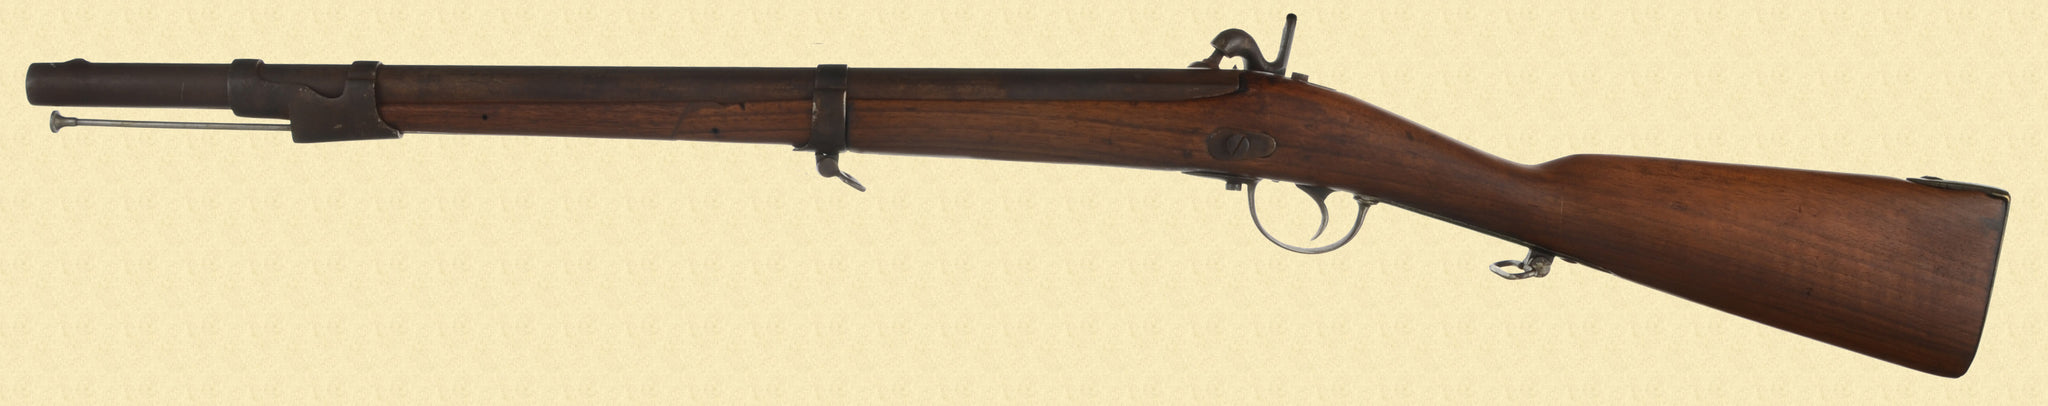 FRENCH M1853 PERCUSSION MUSKET